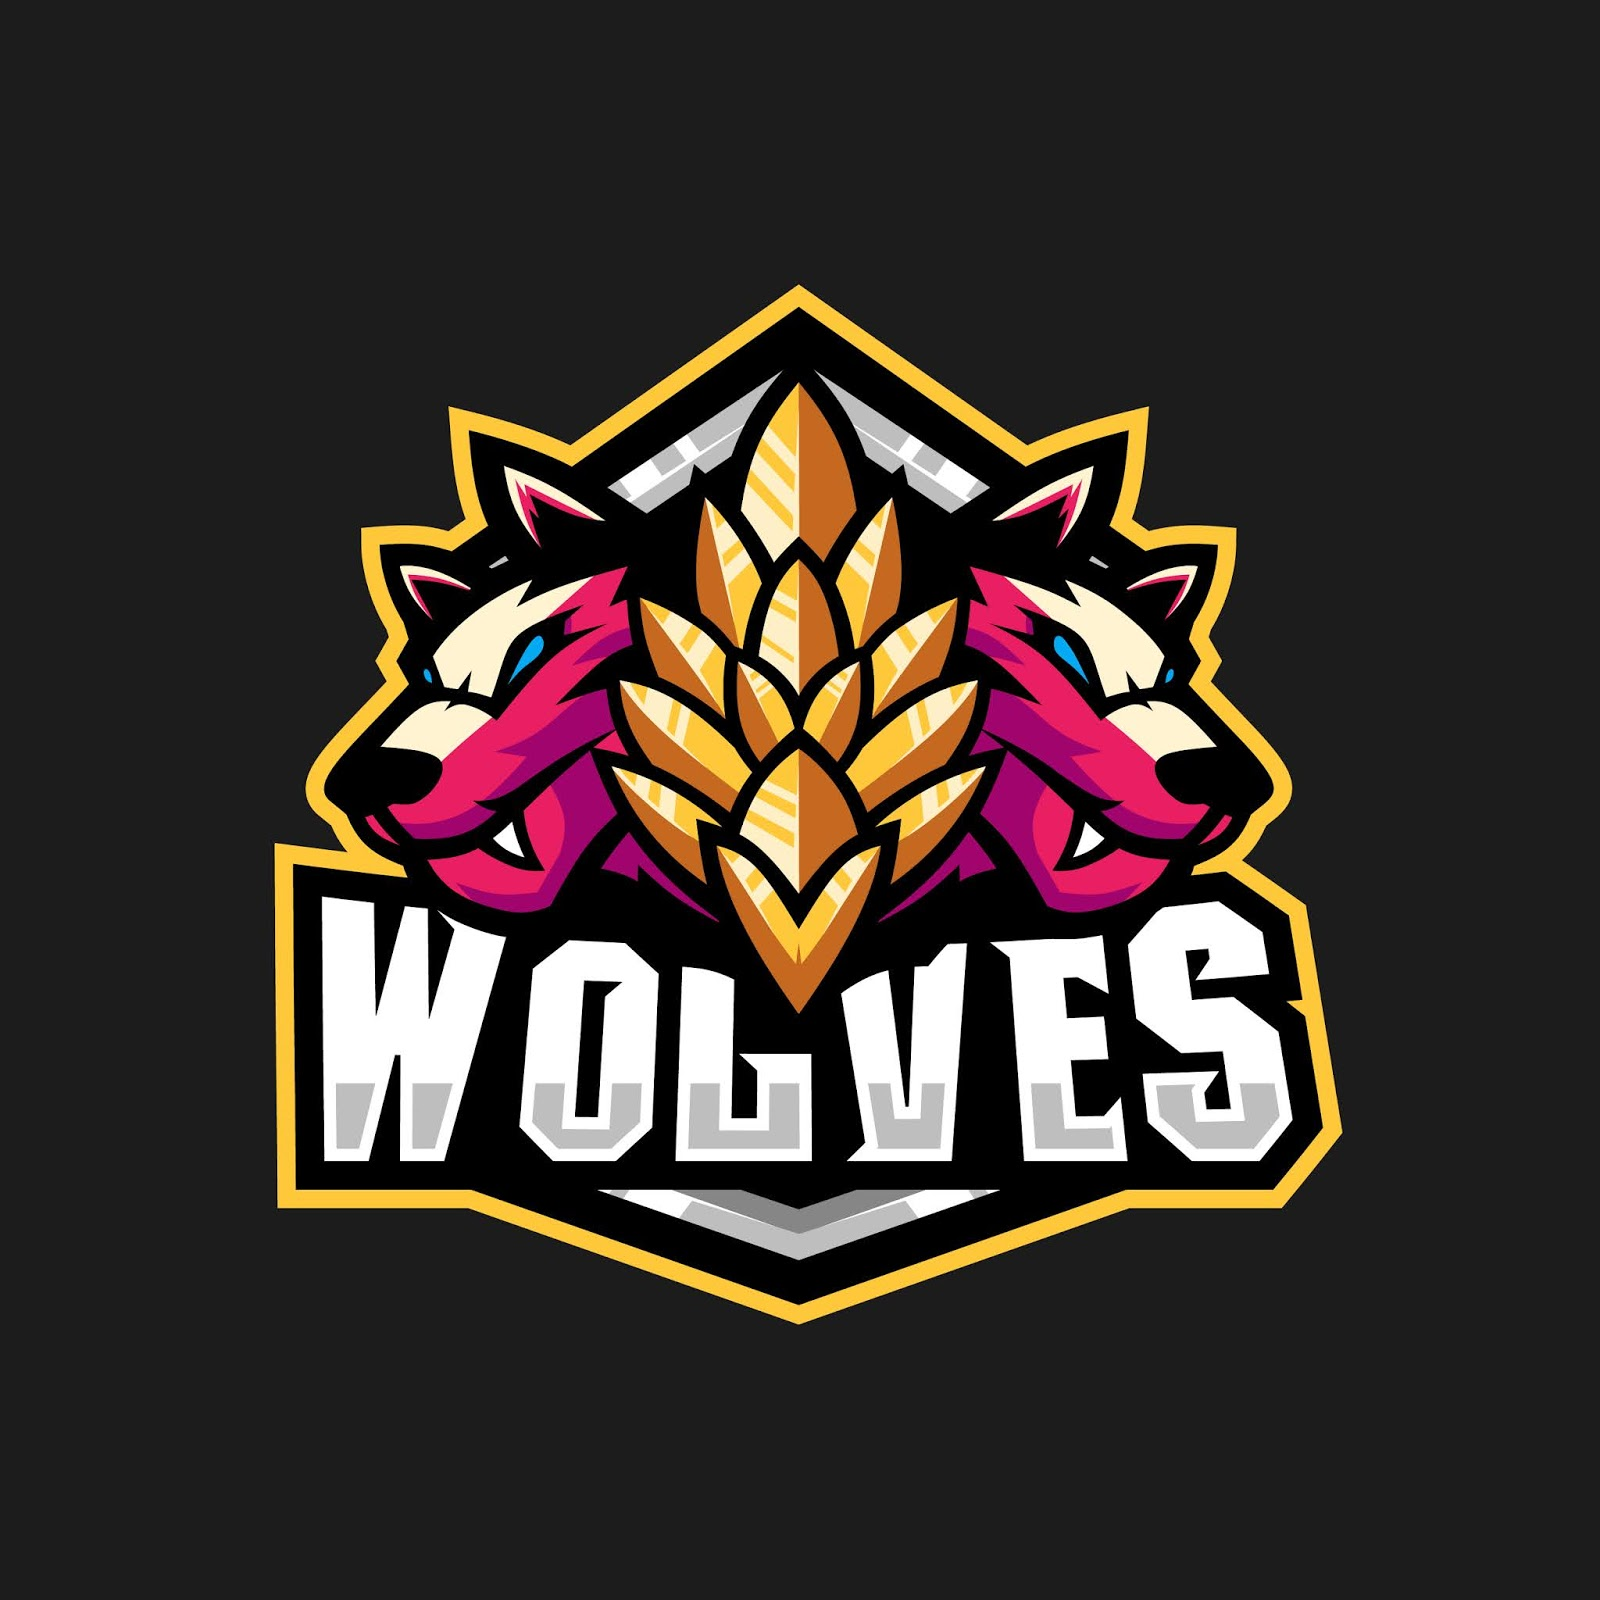 Two Wolves Illustration Gaming Squad Logo Free Download Vector CDR, AI, EPS and PNG Formats